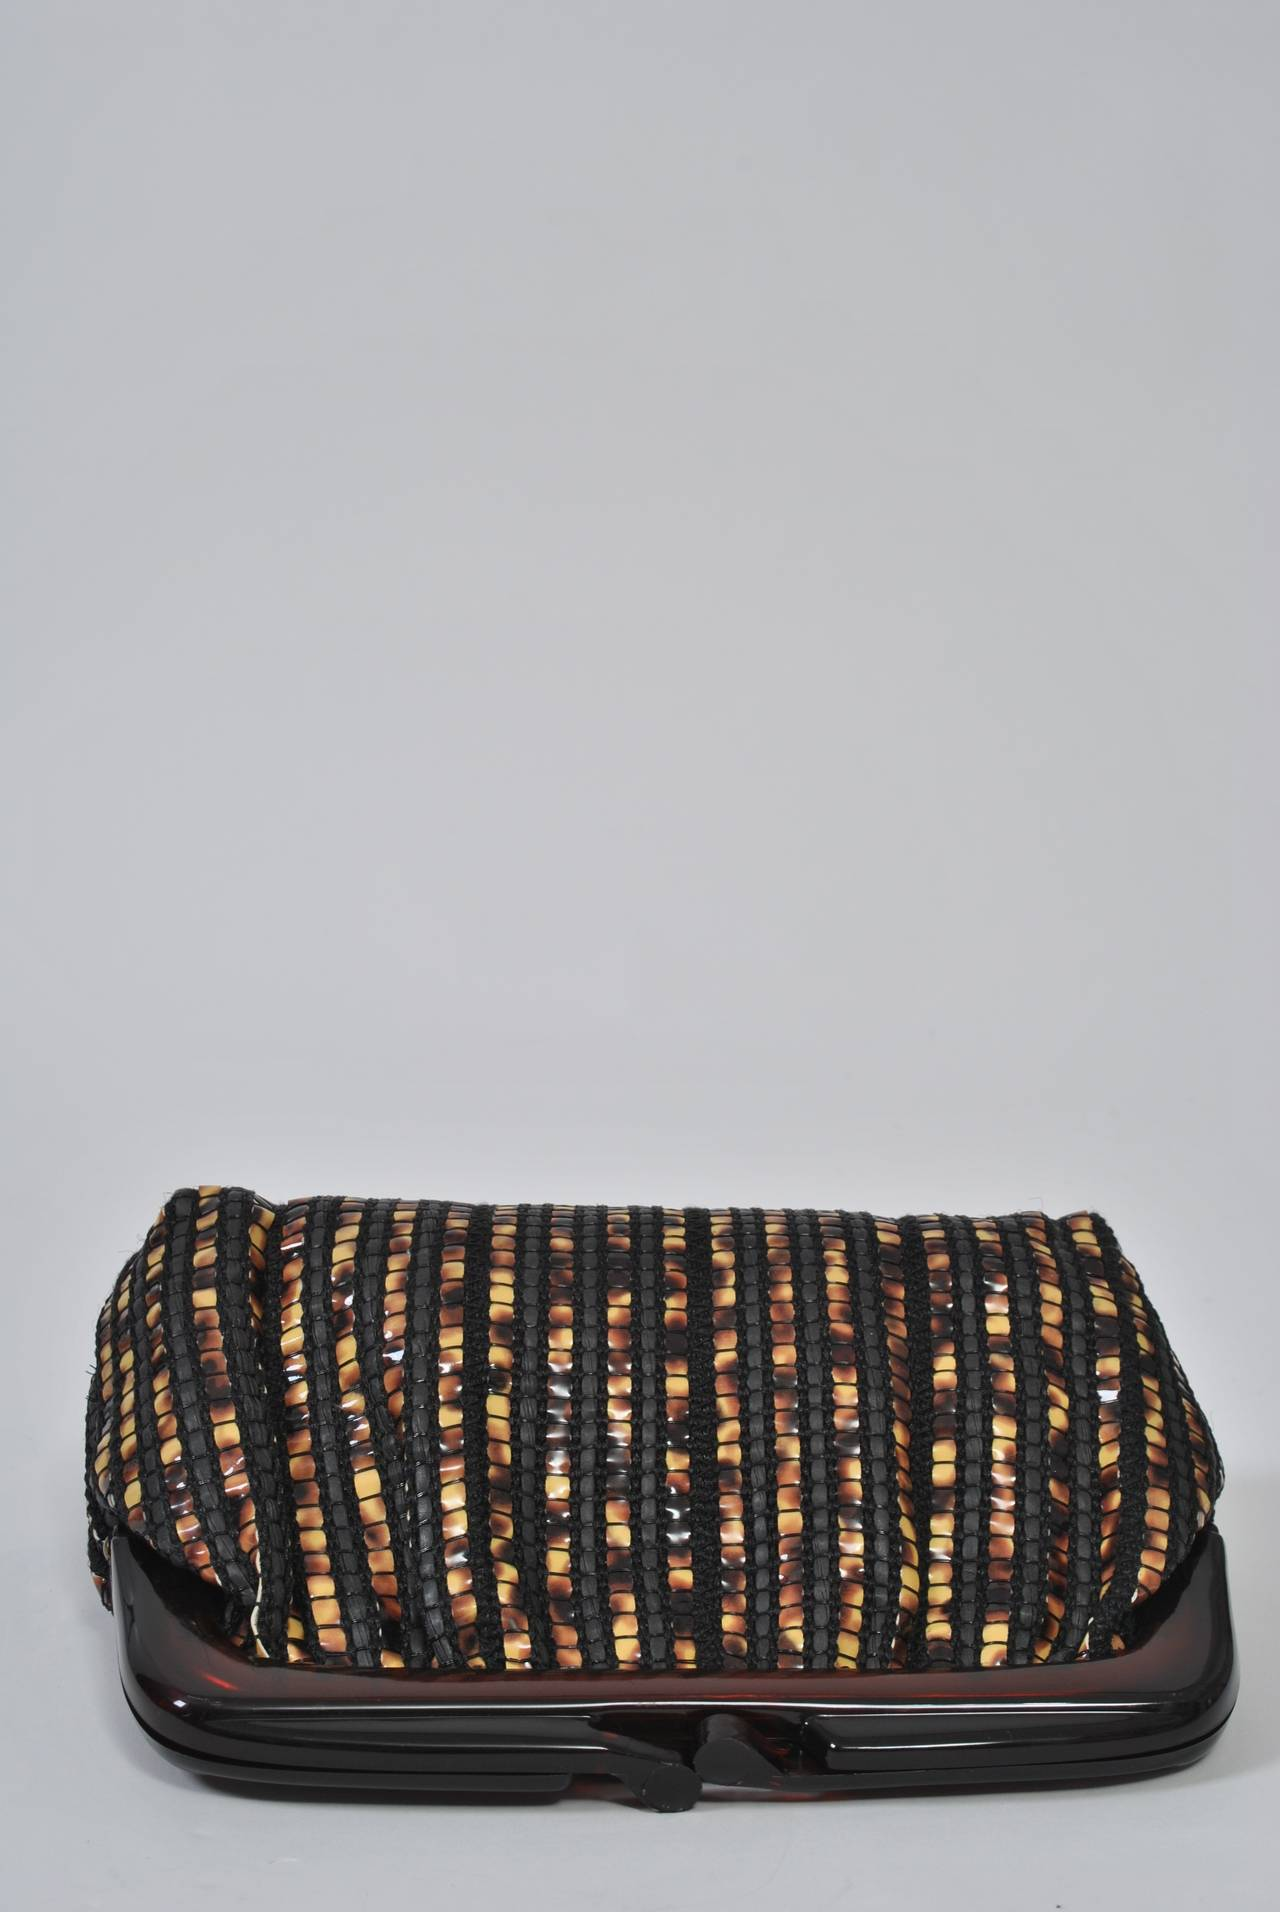 Black 1970s Tortoise Look Clutch, Italy For Sale